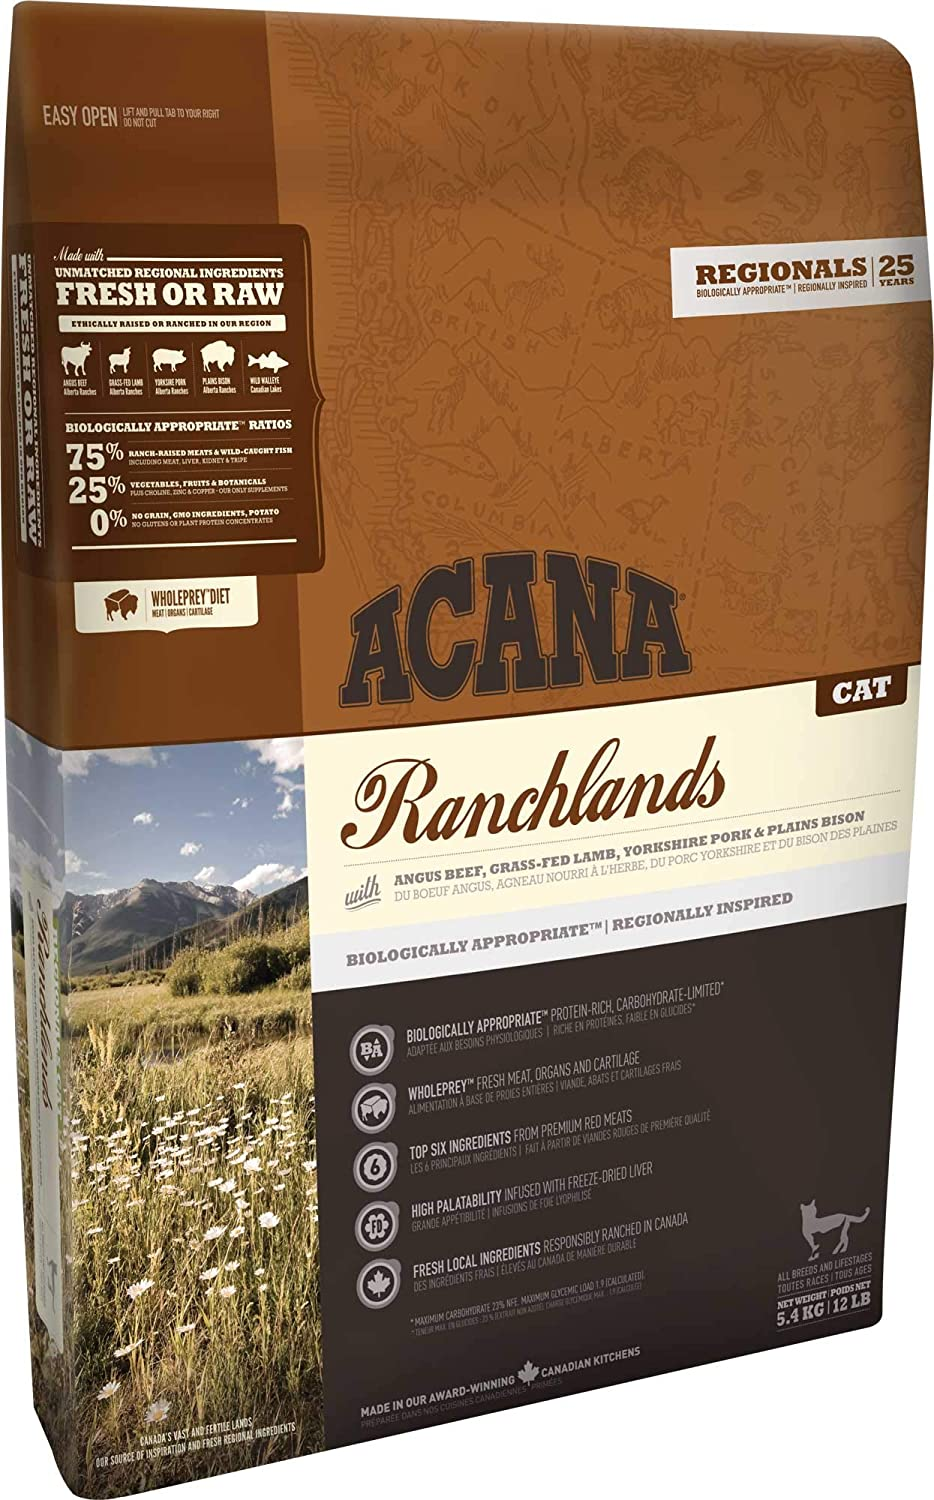 ACANA Ranchlands Cat 0.340 Kg 340 g